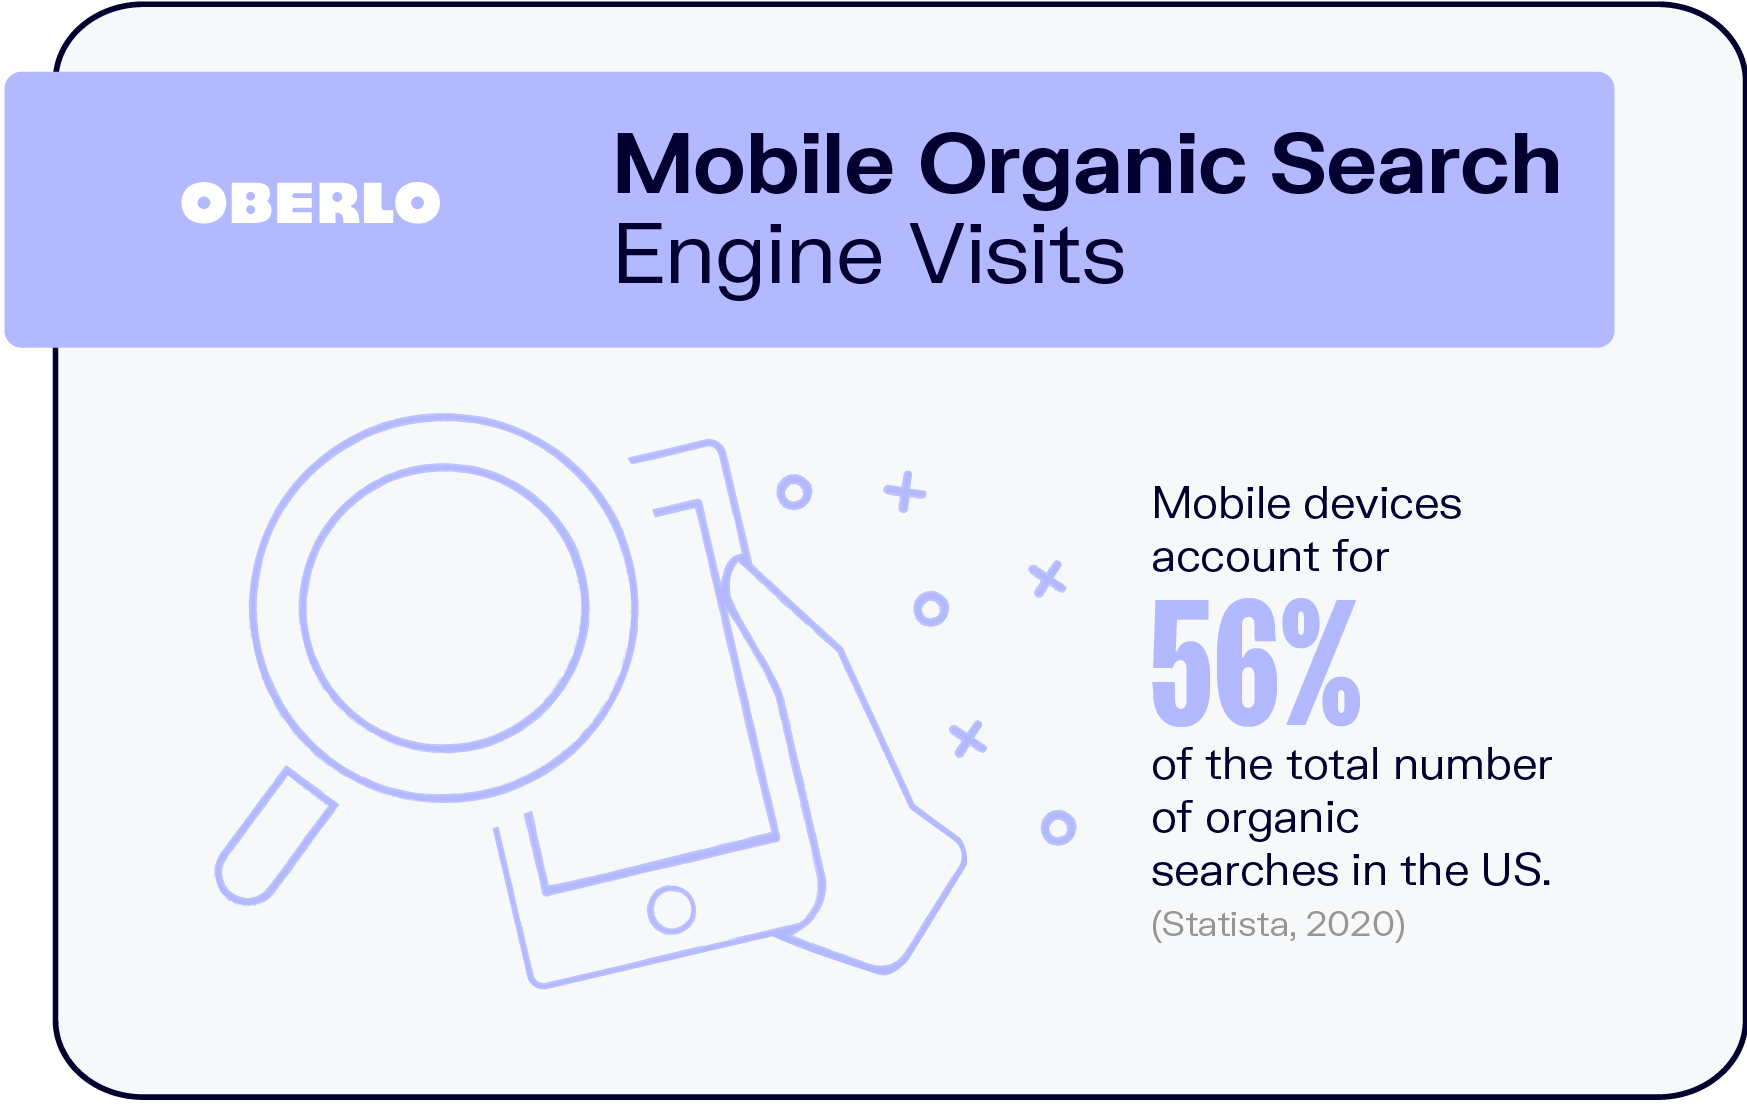 Mobile Organic Search Engine Visits